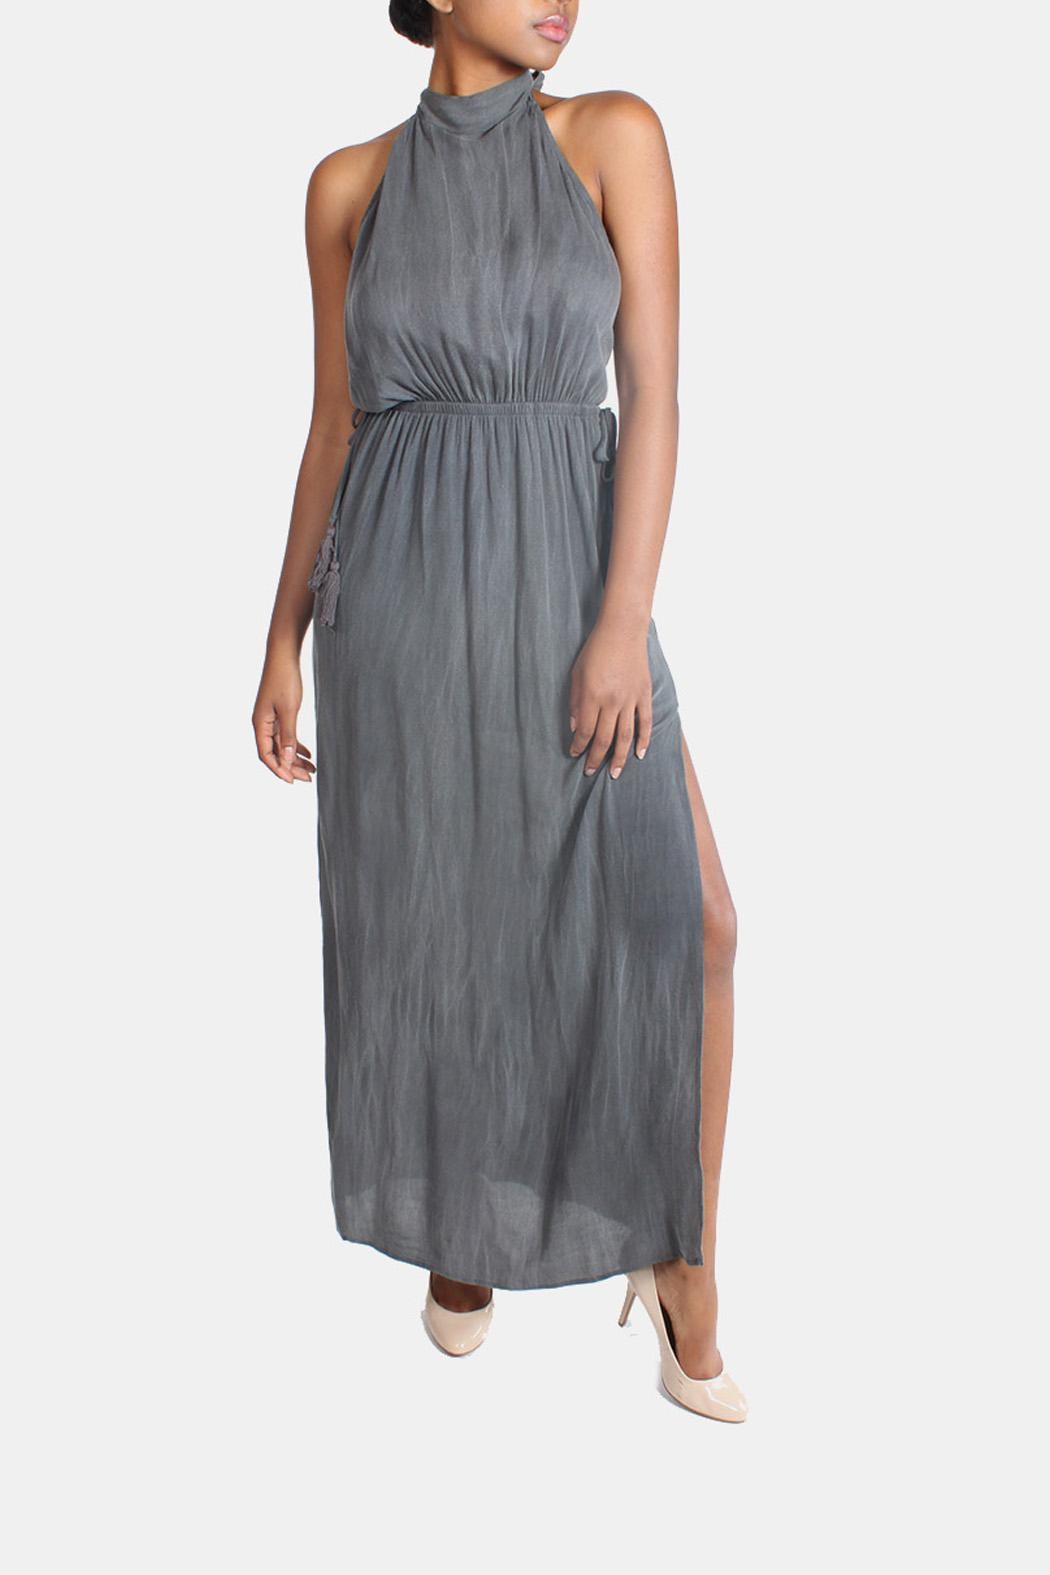 Sage Charcoal High-Neck Maxi-Dress - Front Full Image